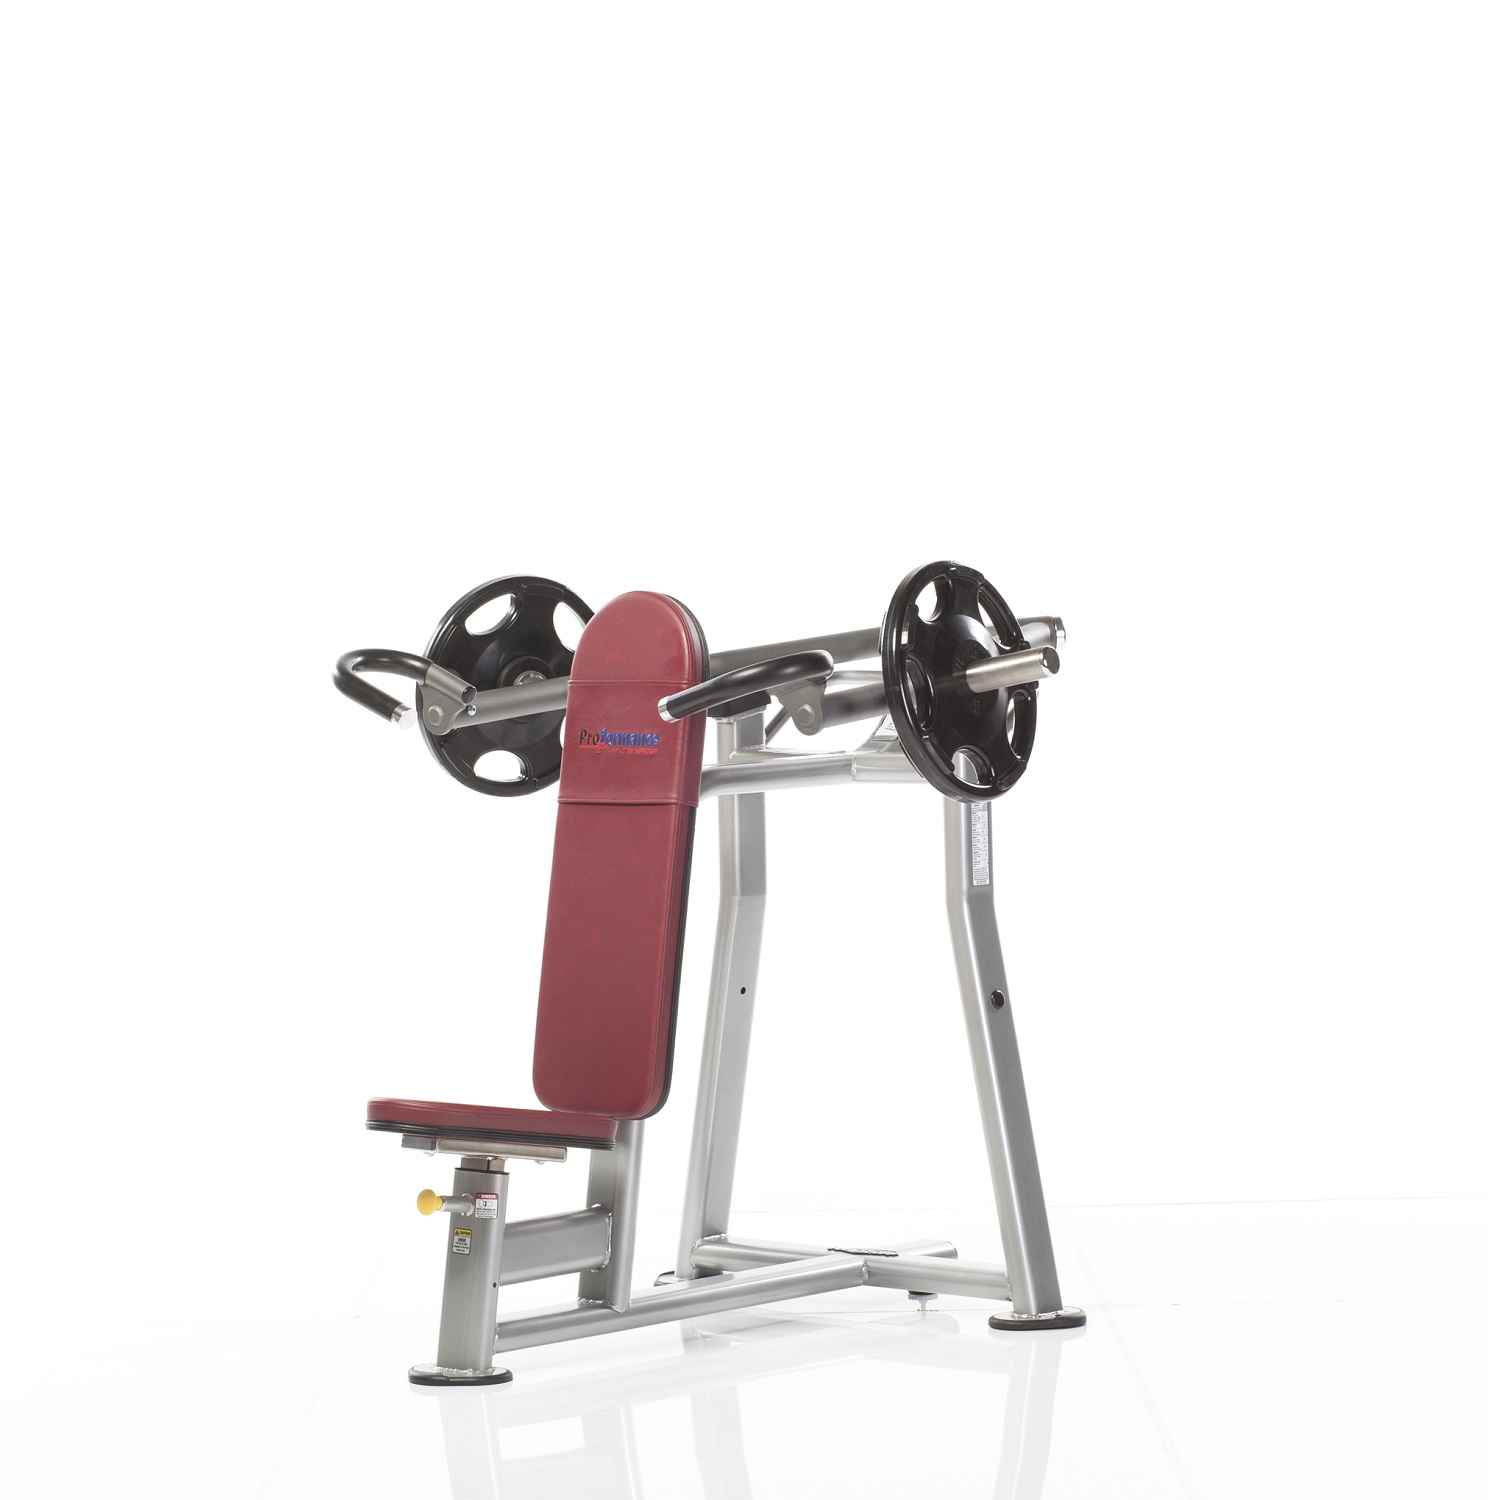 PPL-915 Shoulder Press